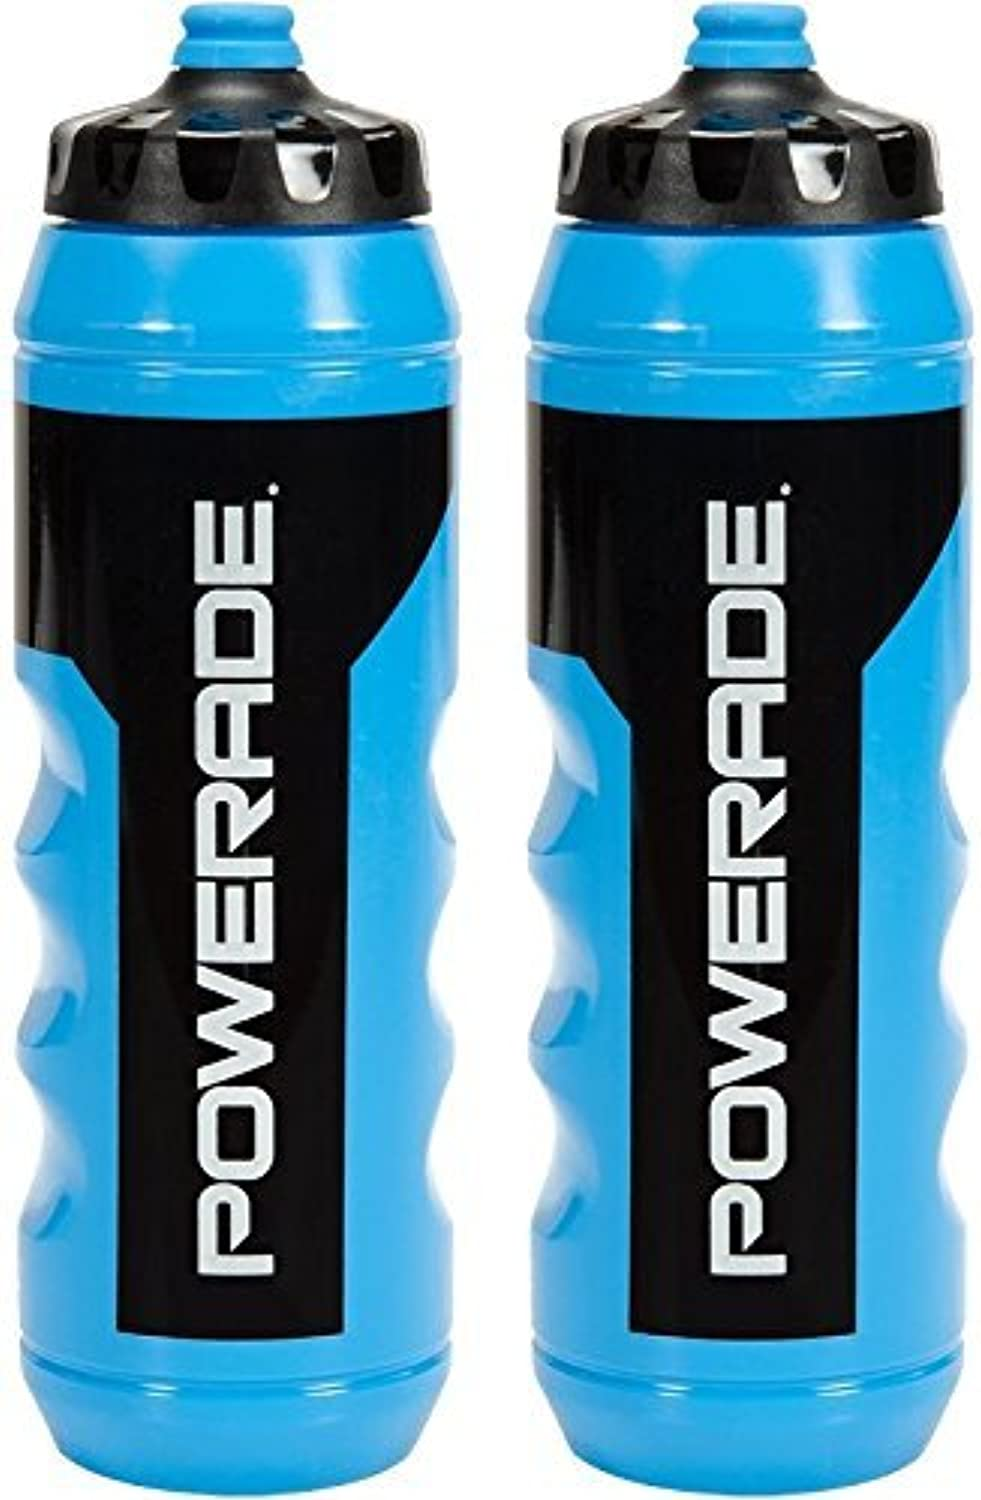 Powerade Squeeze Water Bottle 32oz (2 pack) by Powerade